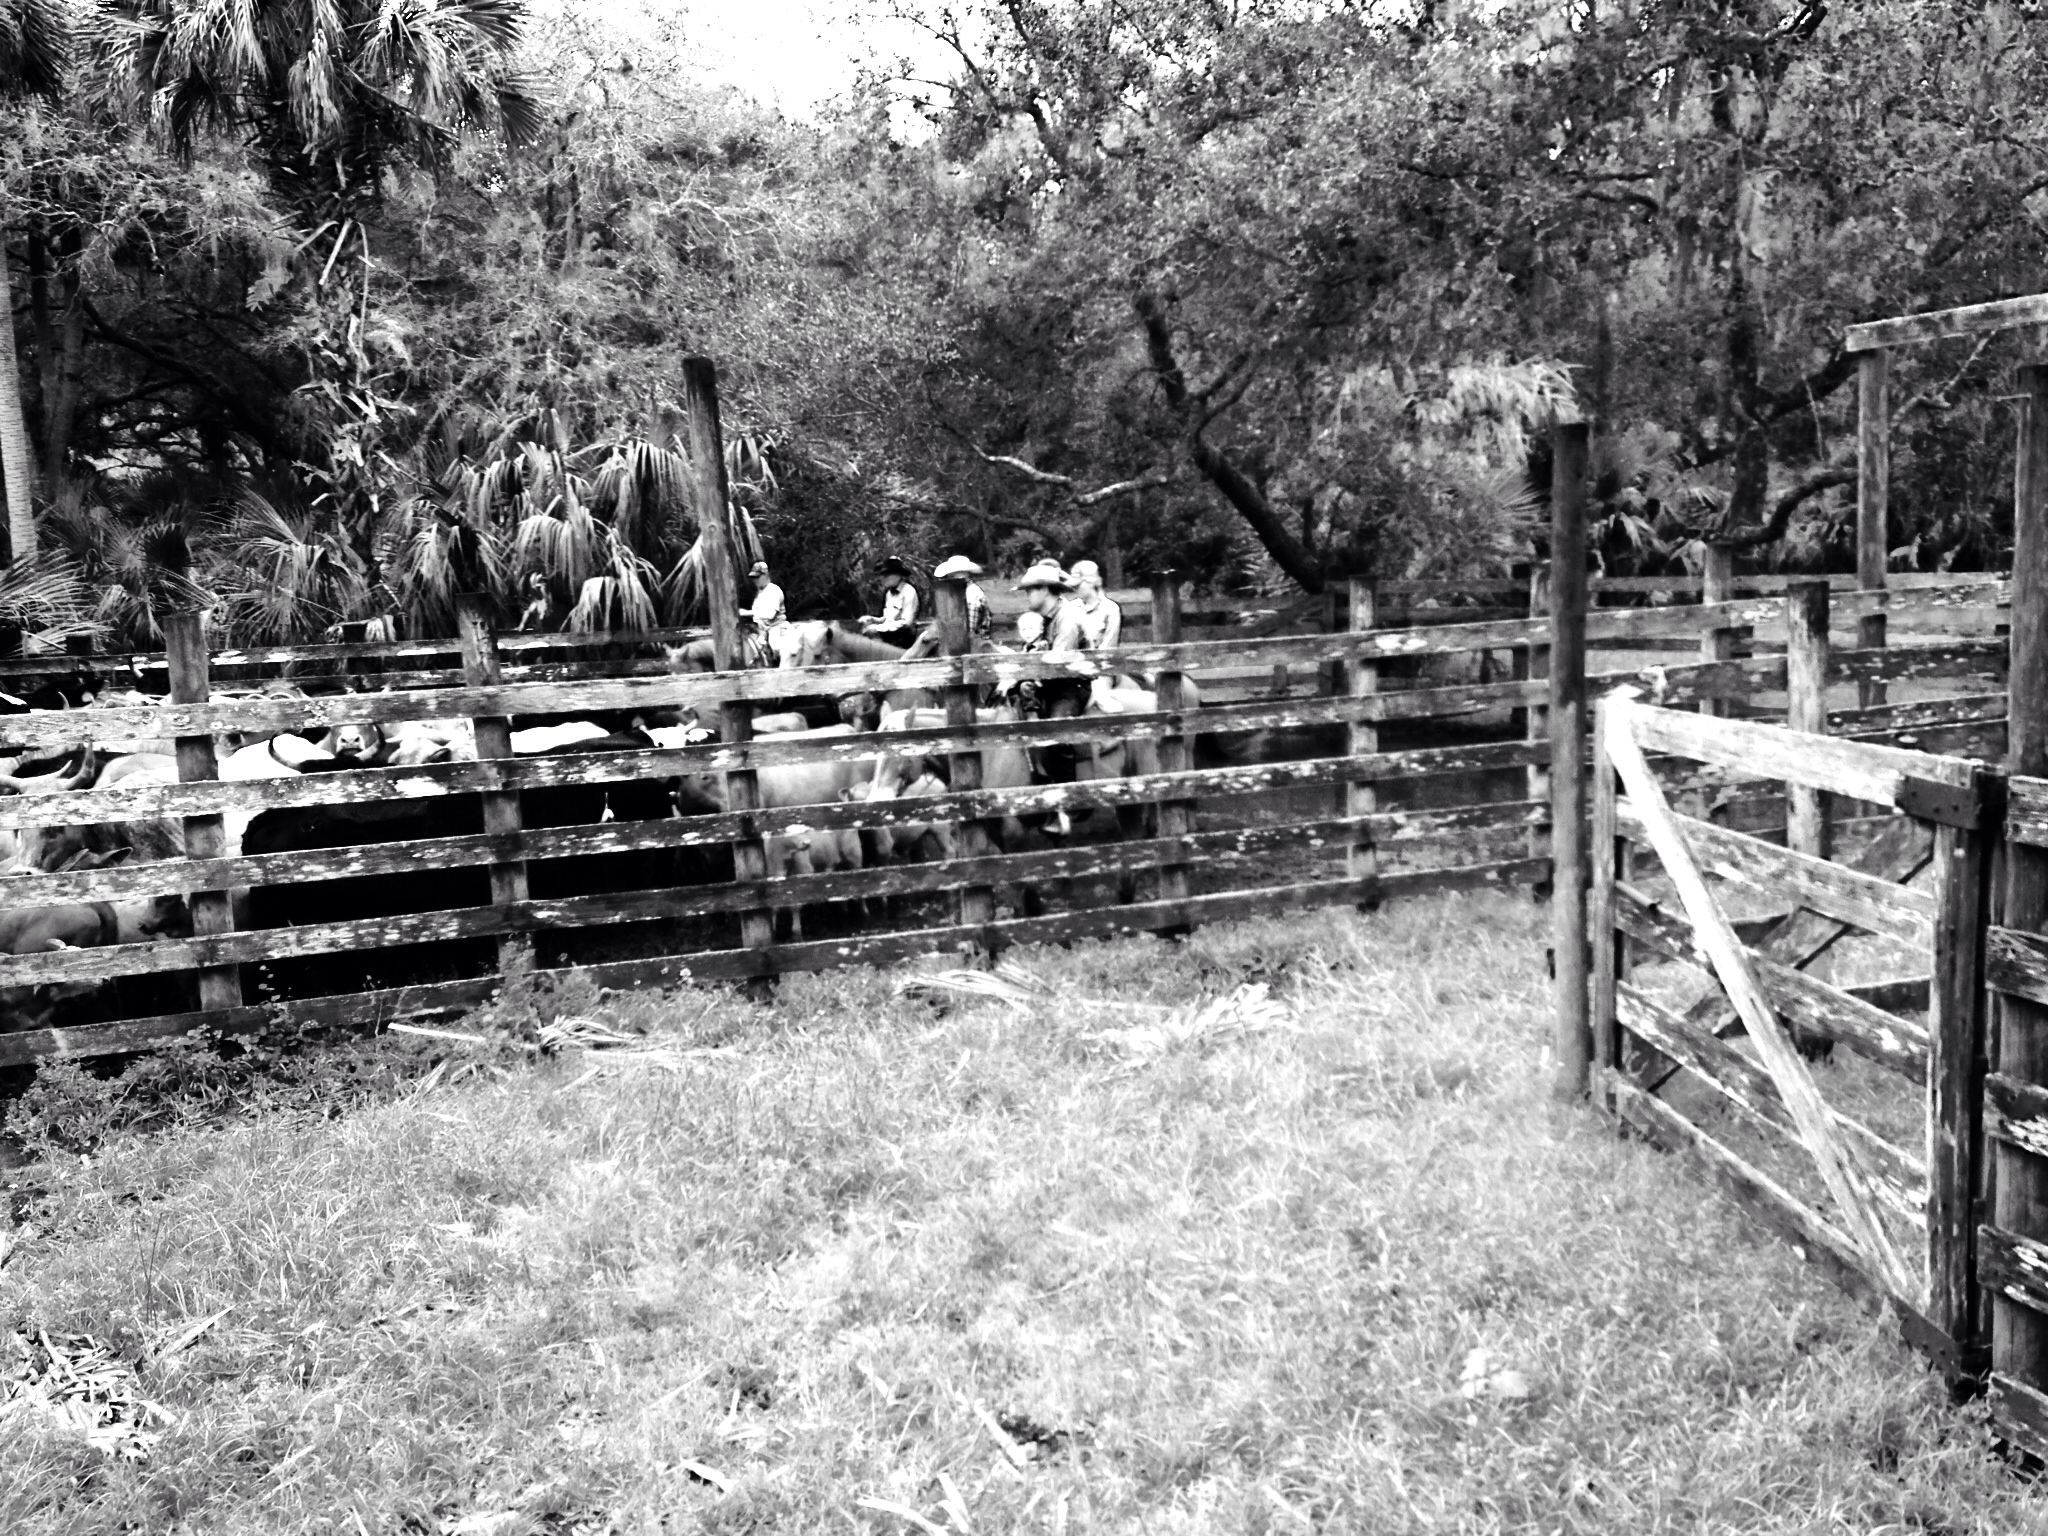 Bringing Cattle Into The Pens Old Florida Vintage Florida Orlando Strong